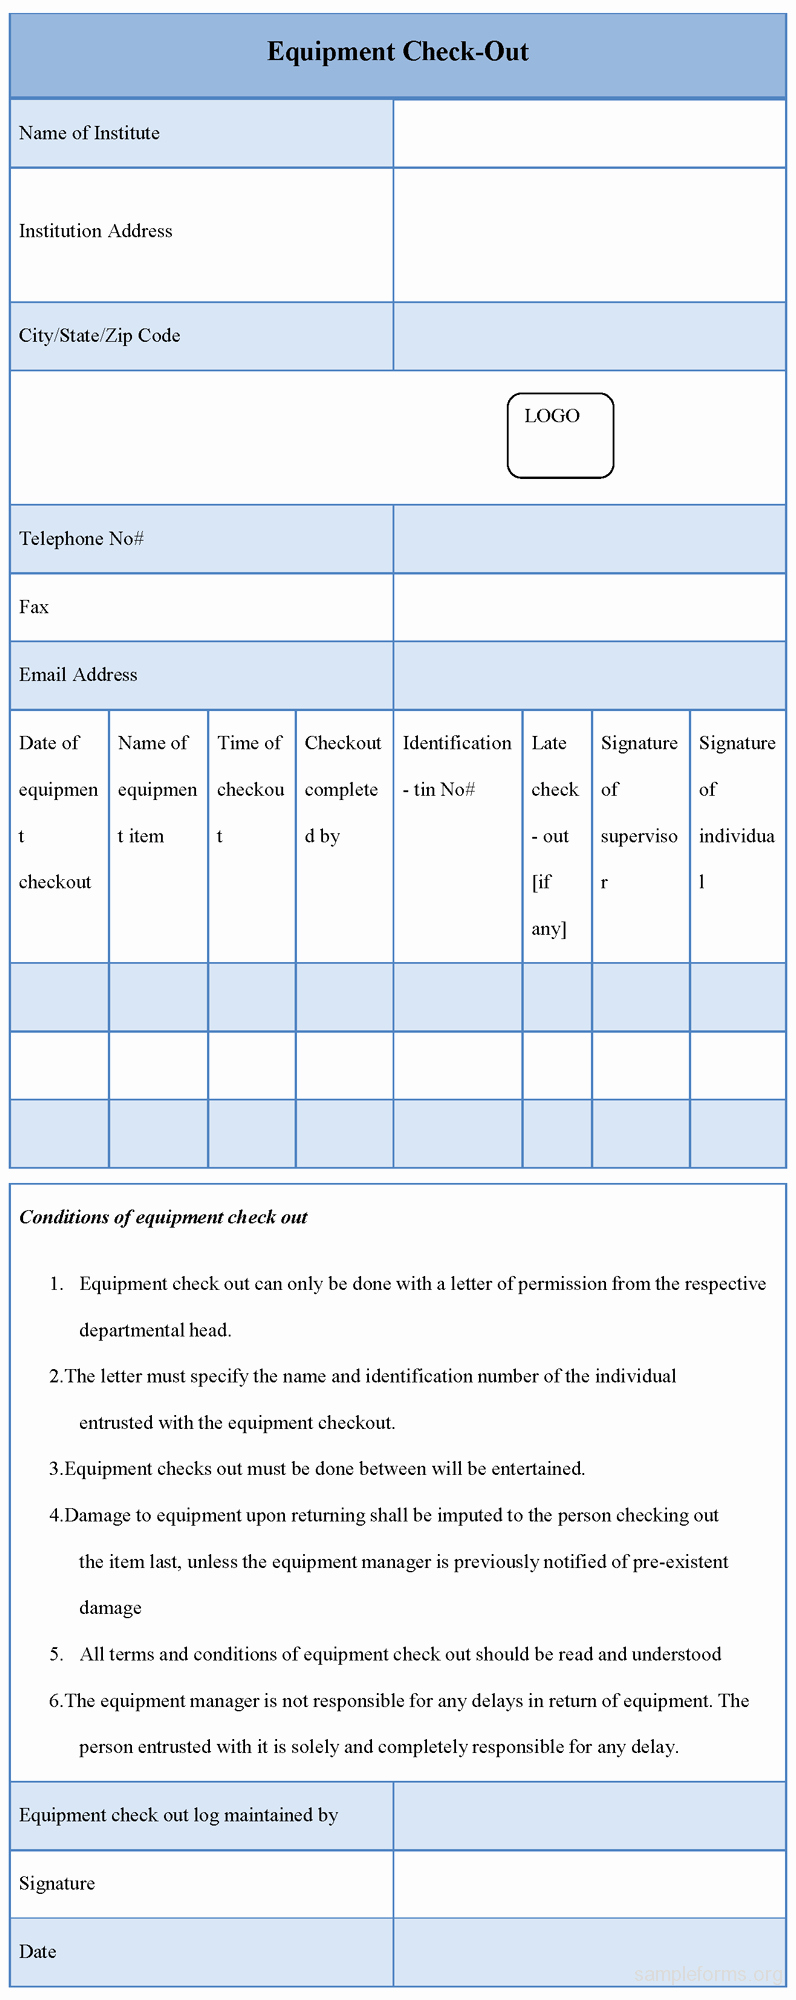 Check Out Sheet Template Inspirational Best S Of Equipment Check Out form Template Excel